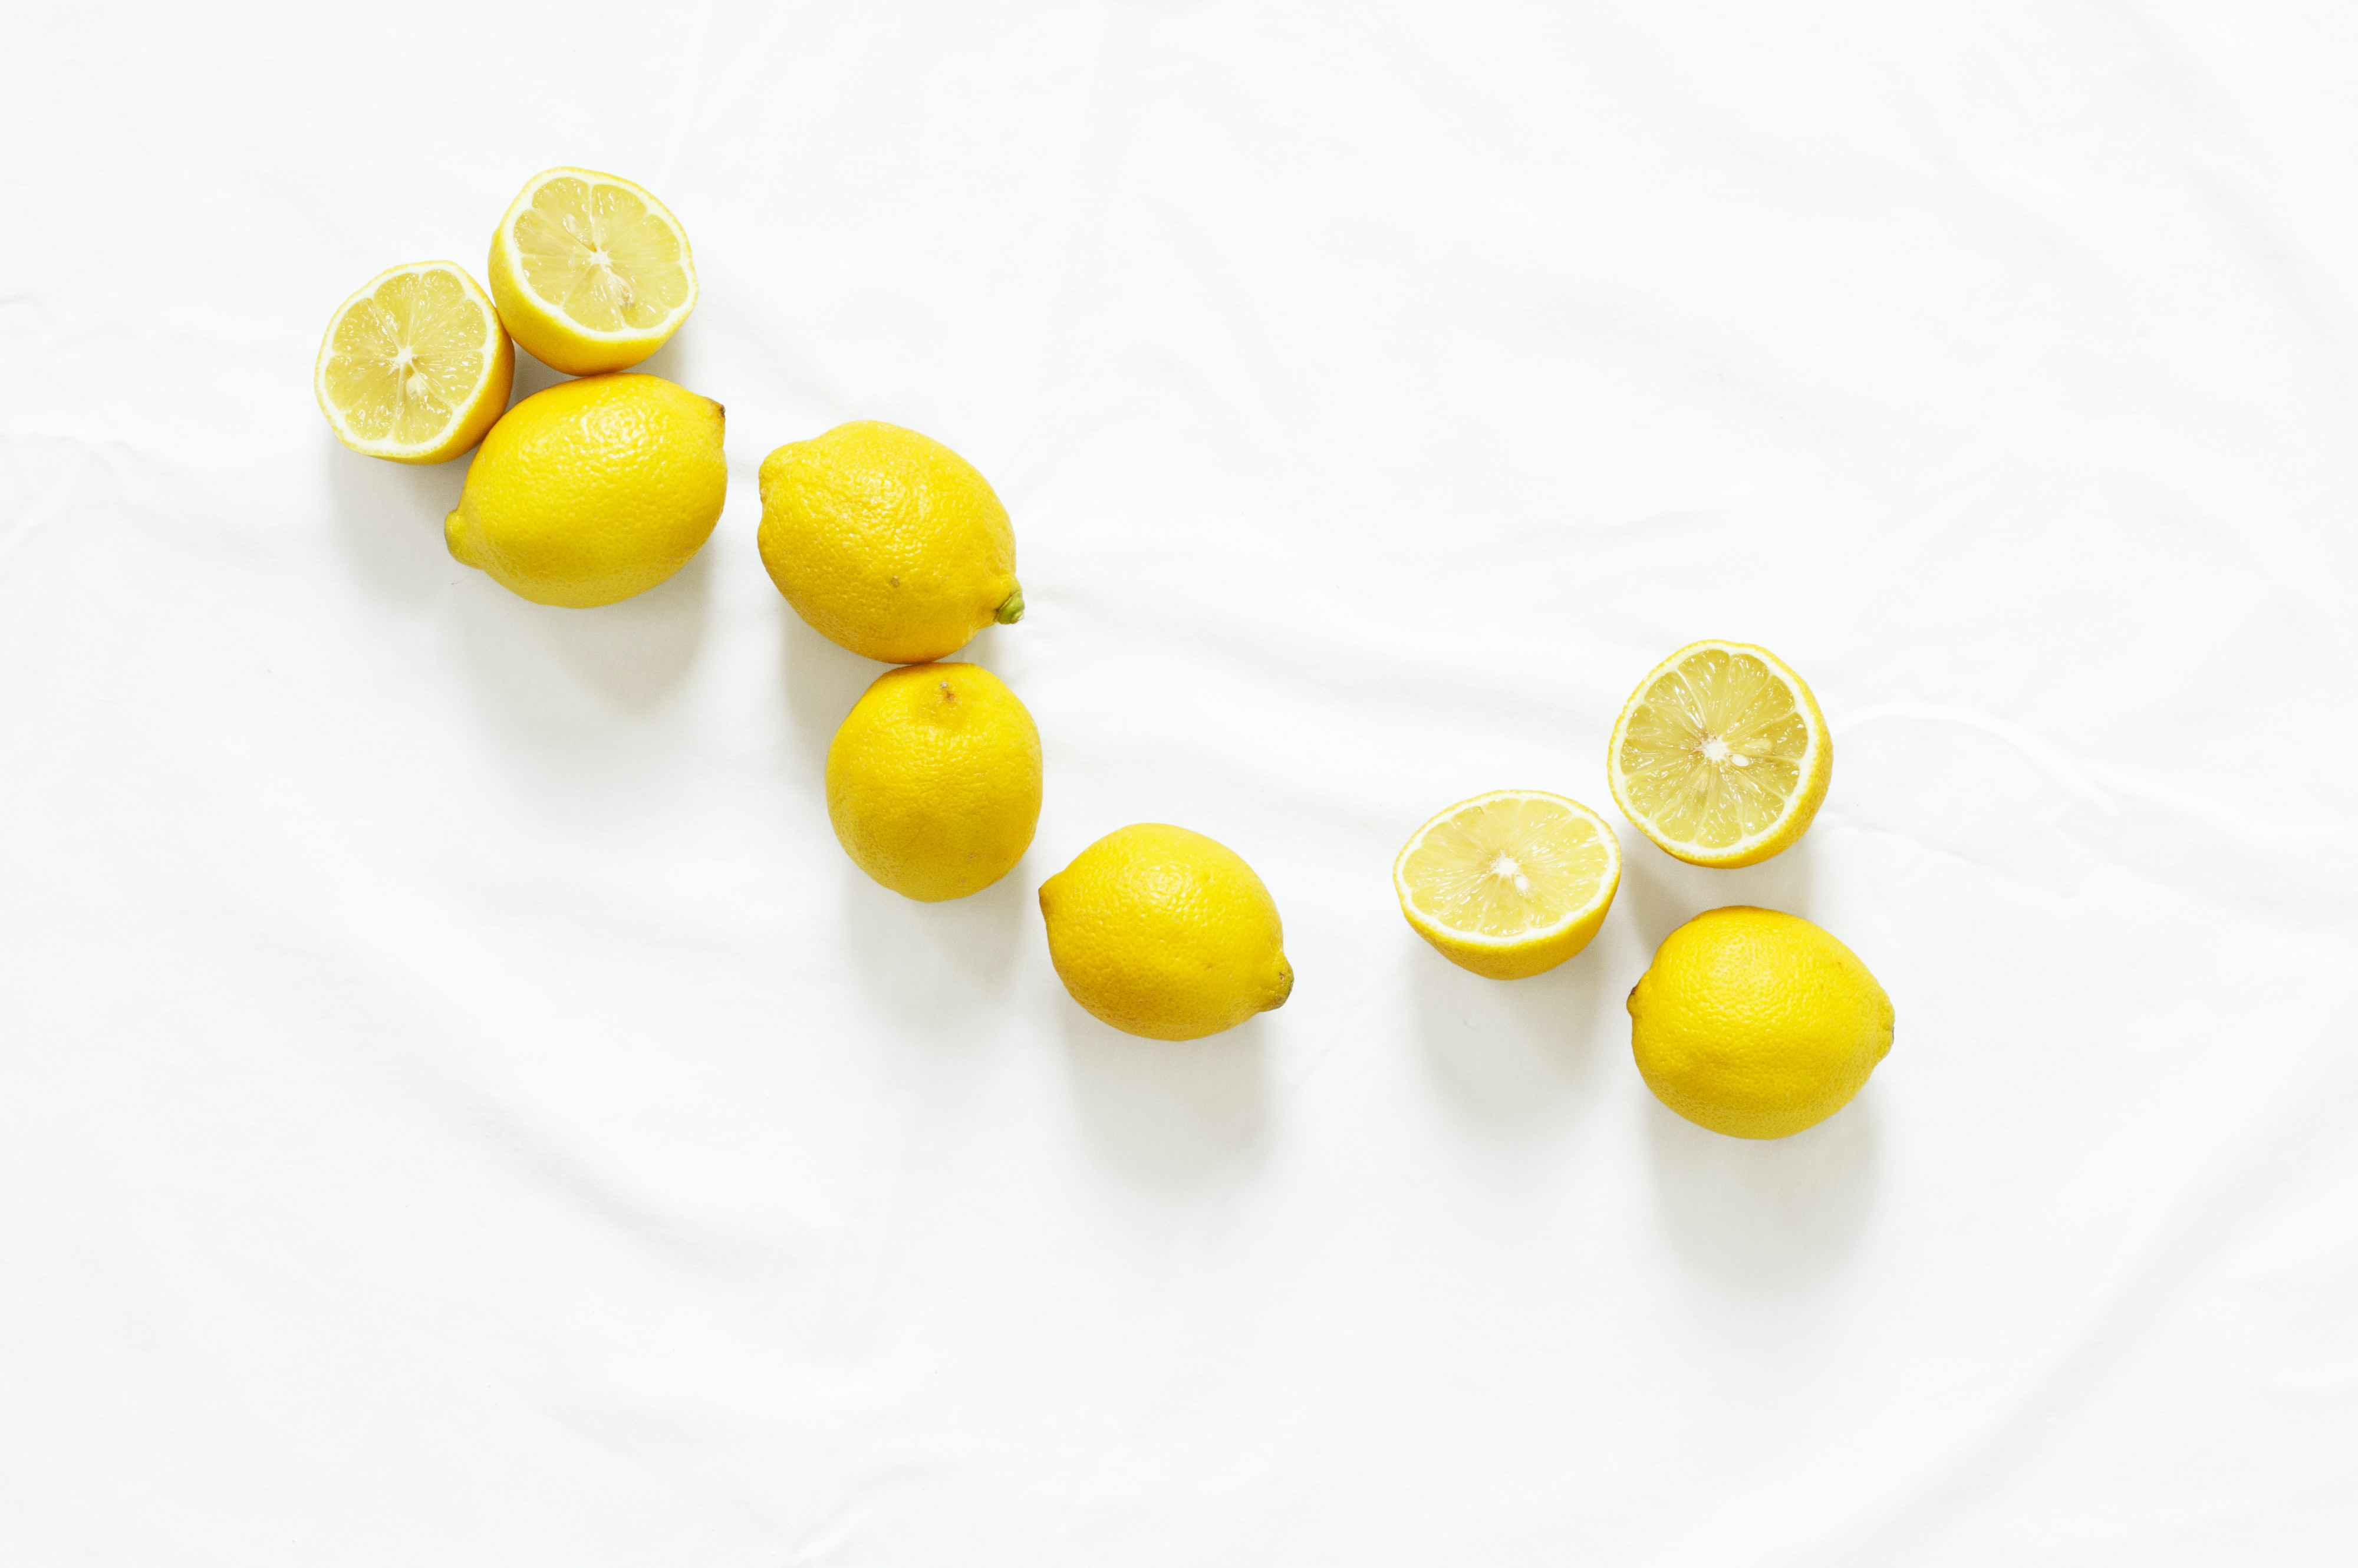 bunch of sliced American lemon